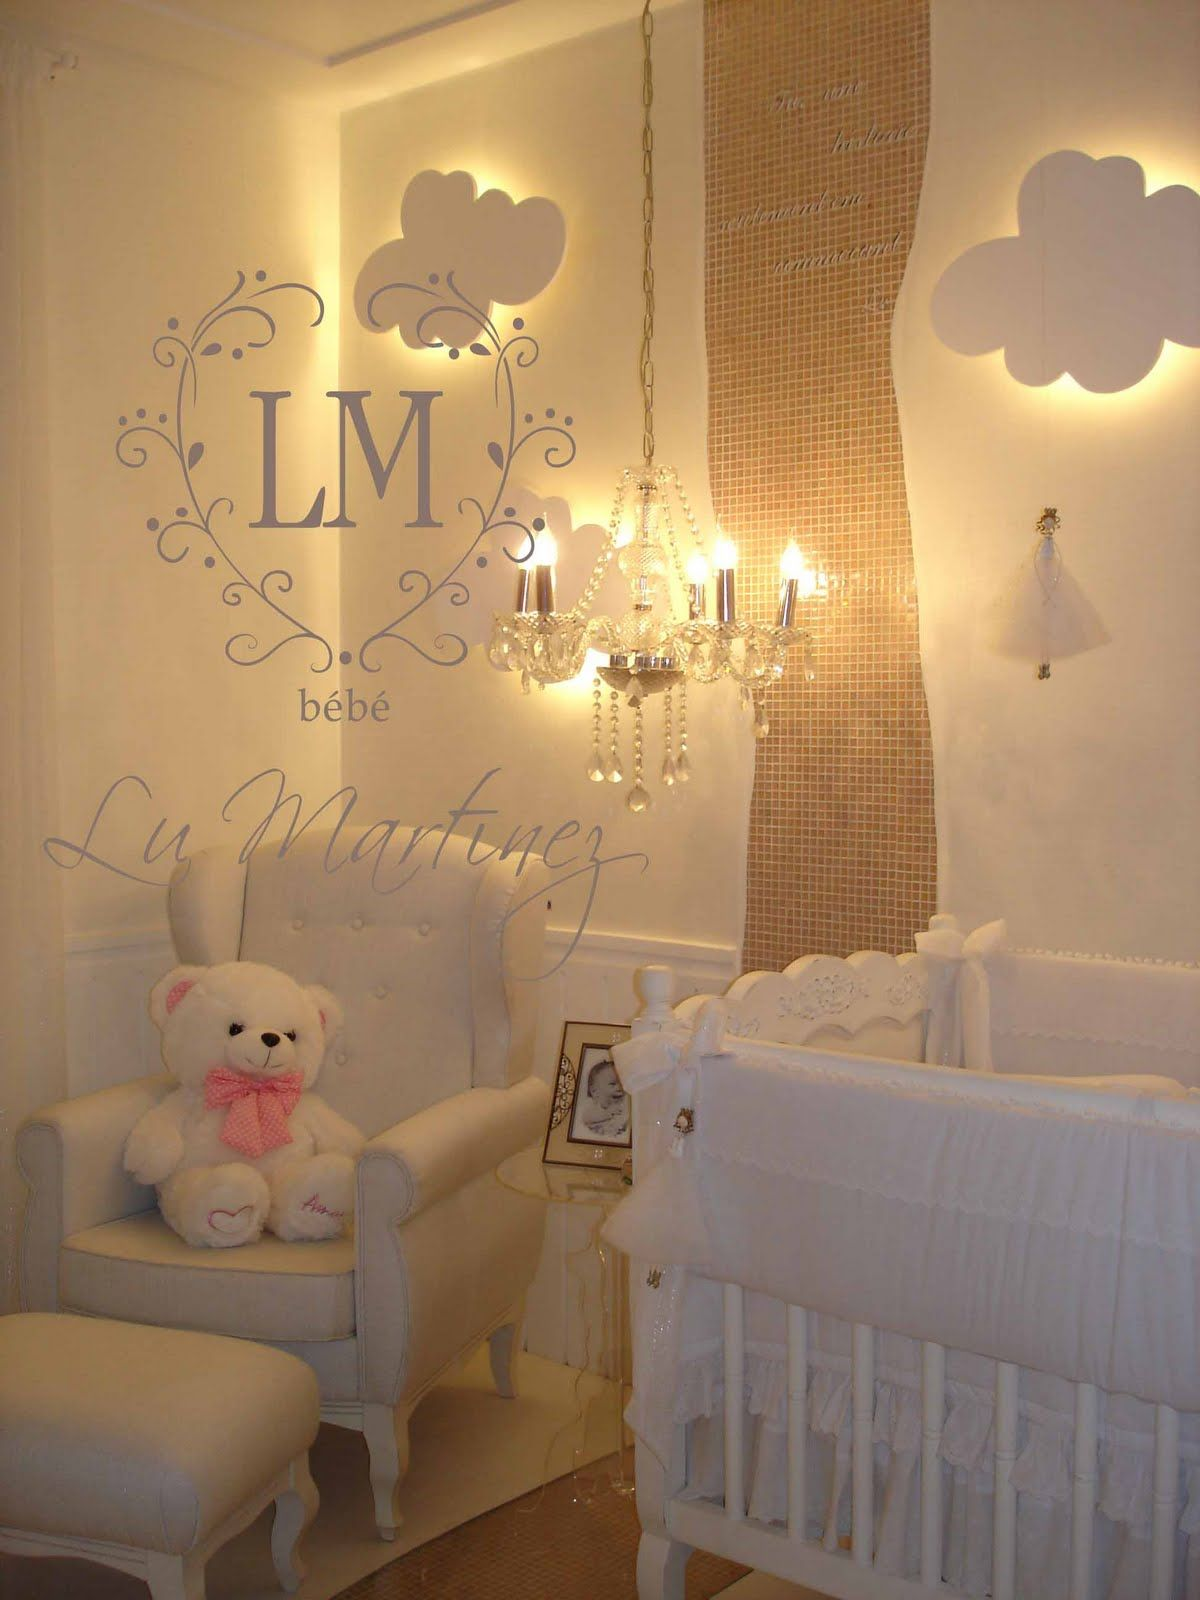 die wandlampen babyzimmer pinterest wandlampen. Black Bedroom Furniture Sets. Home Design Ideas